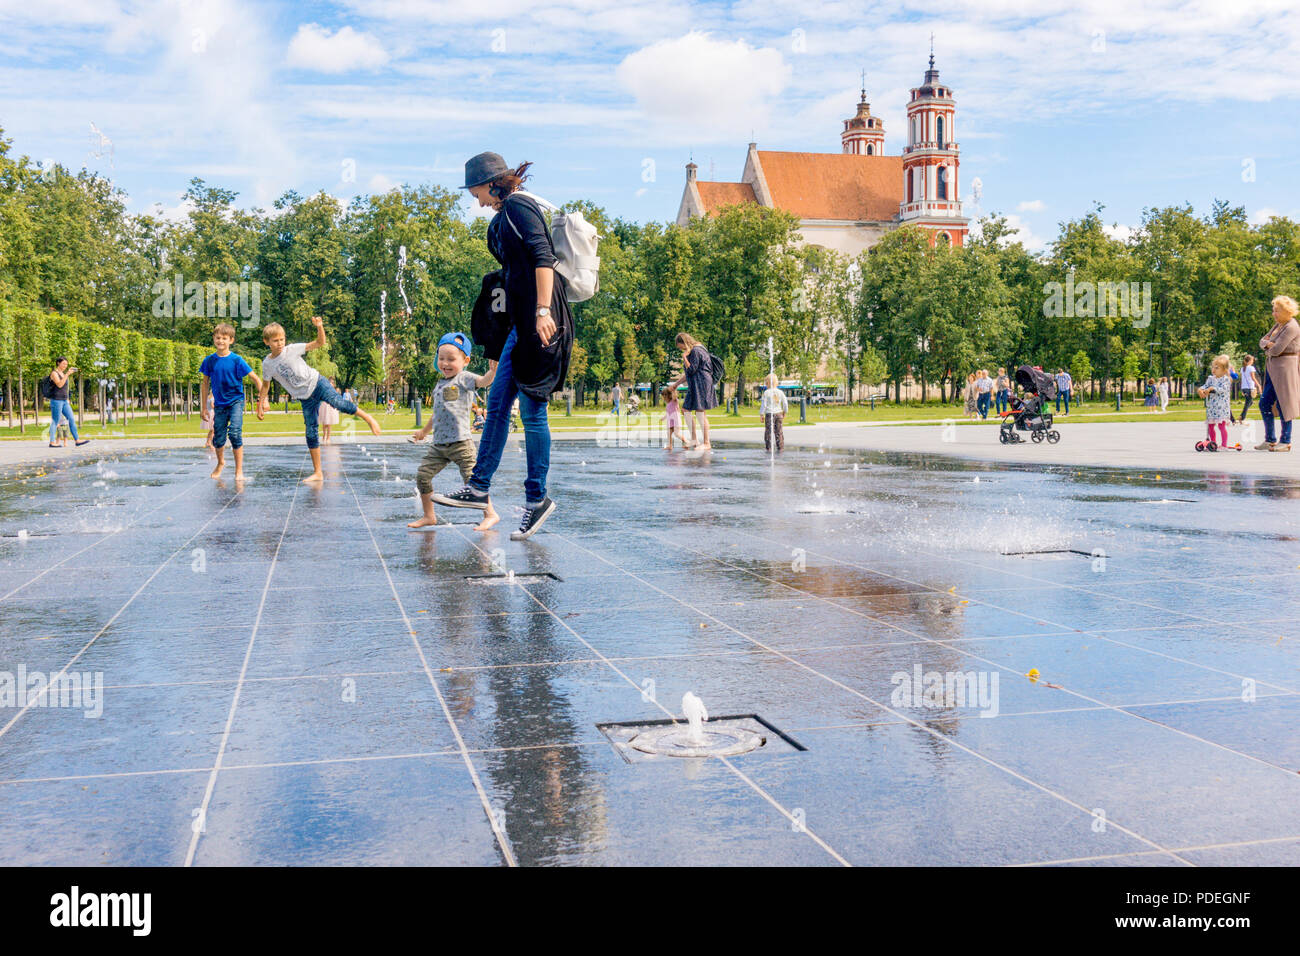 People have fun playing in city water fountain on hot summer day in Lukiskes square. - Stock Image